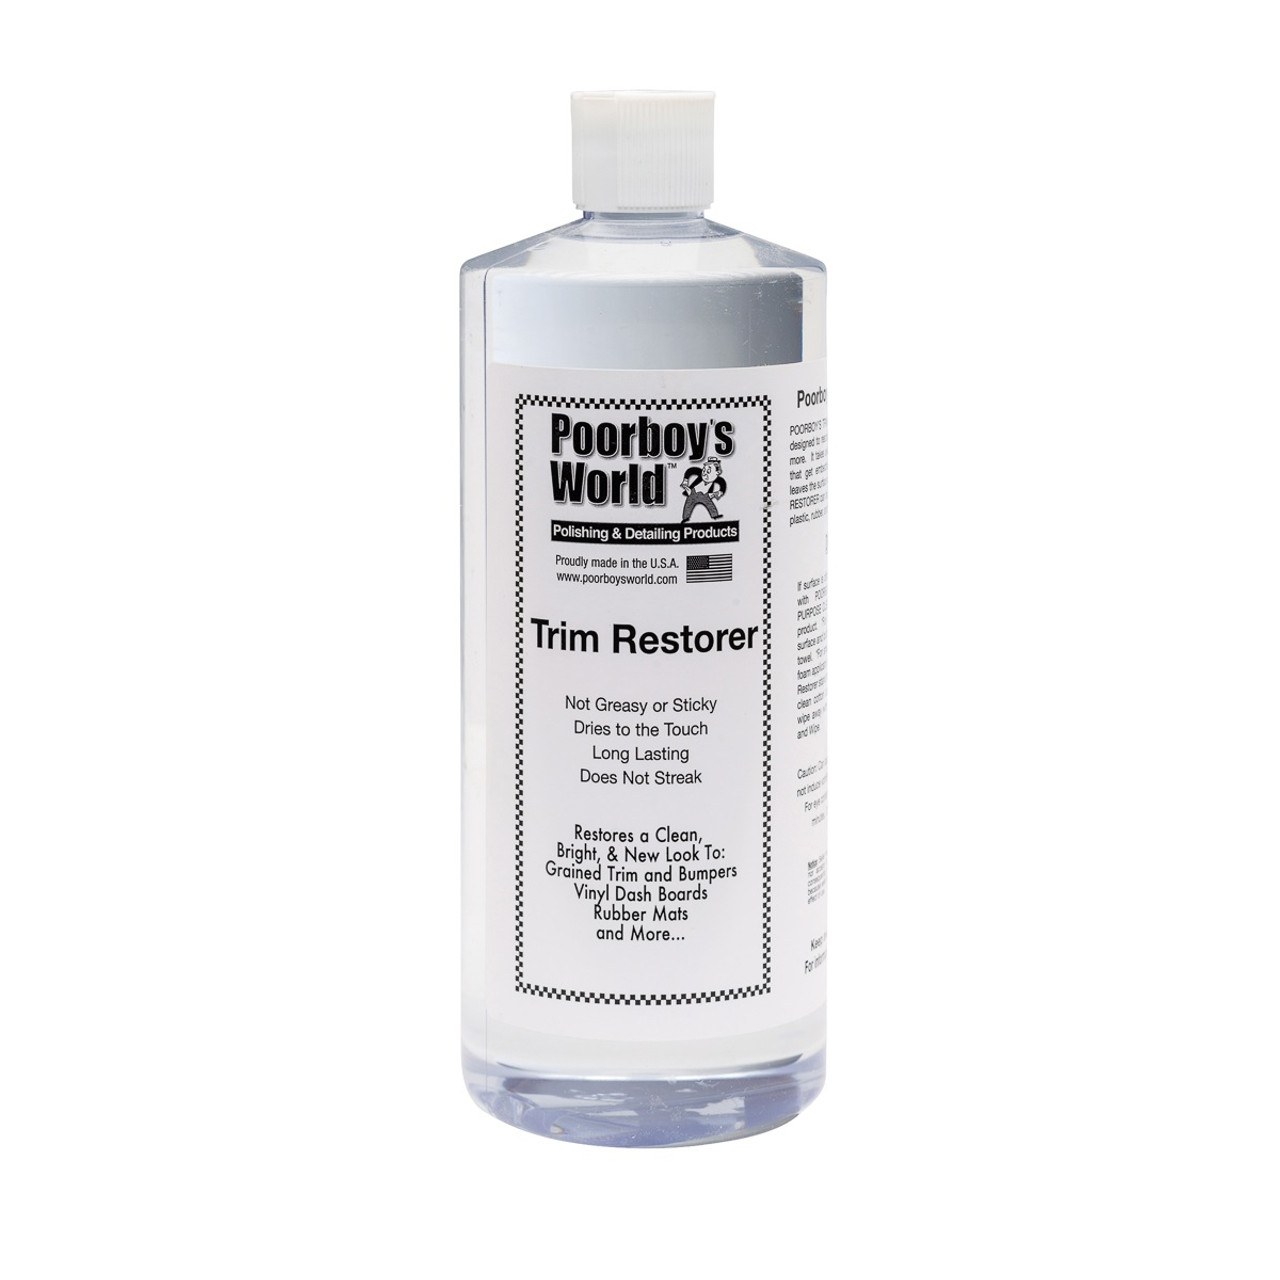 Poorboy's World Trim Restorer 32oz Refill